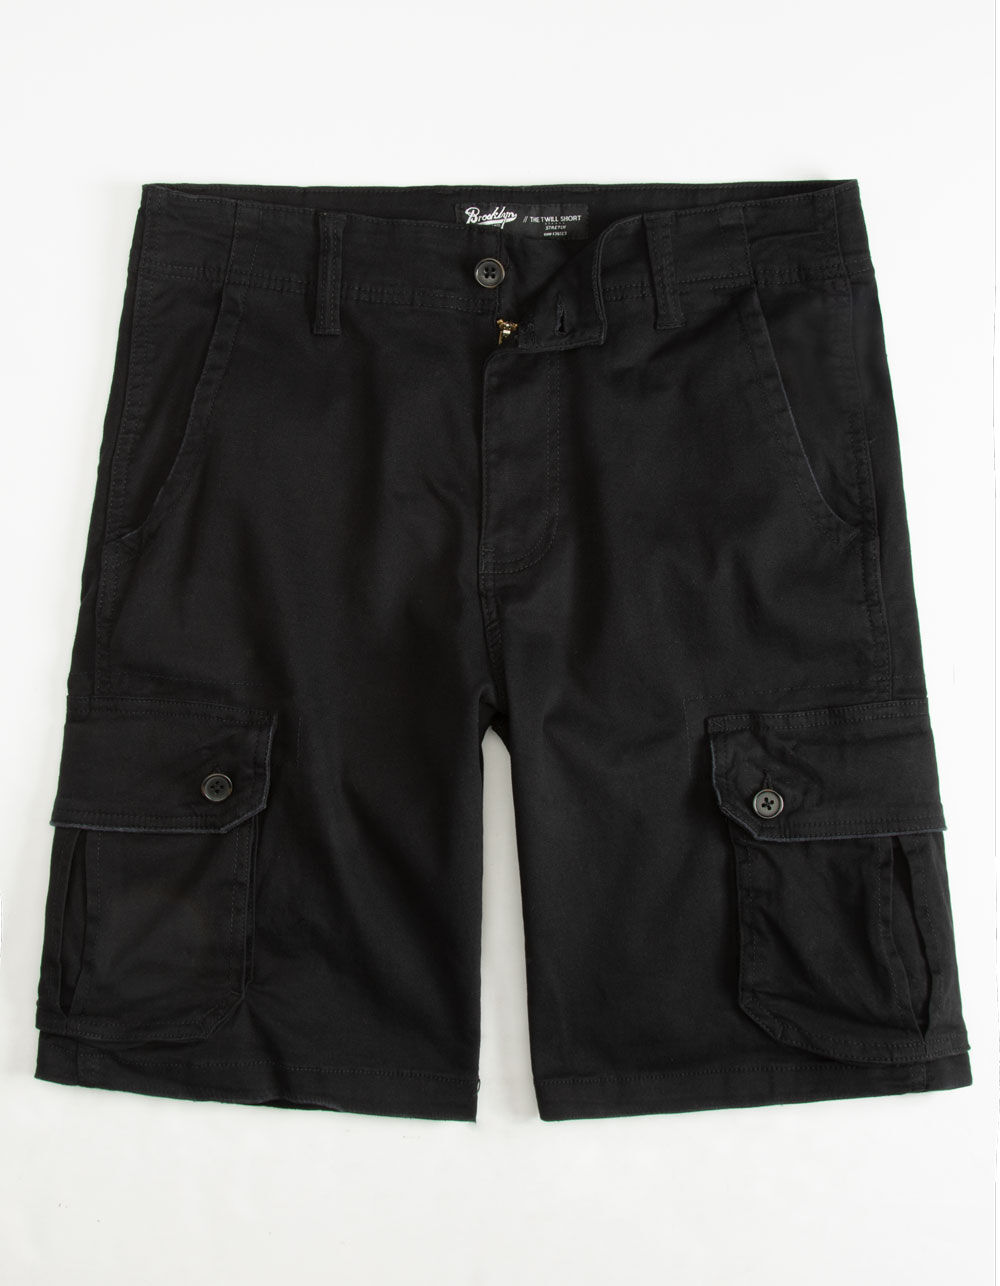 Image of BROOKLYN CLOTH BLACK CARGO SHORTS